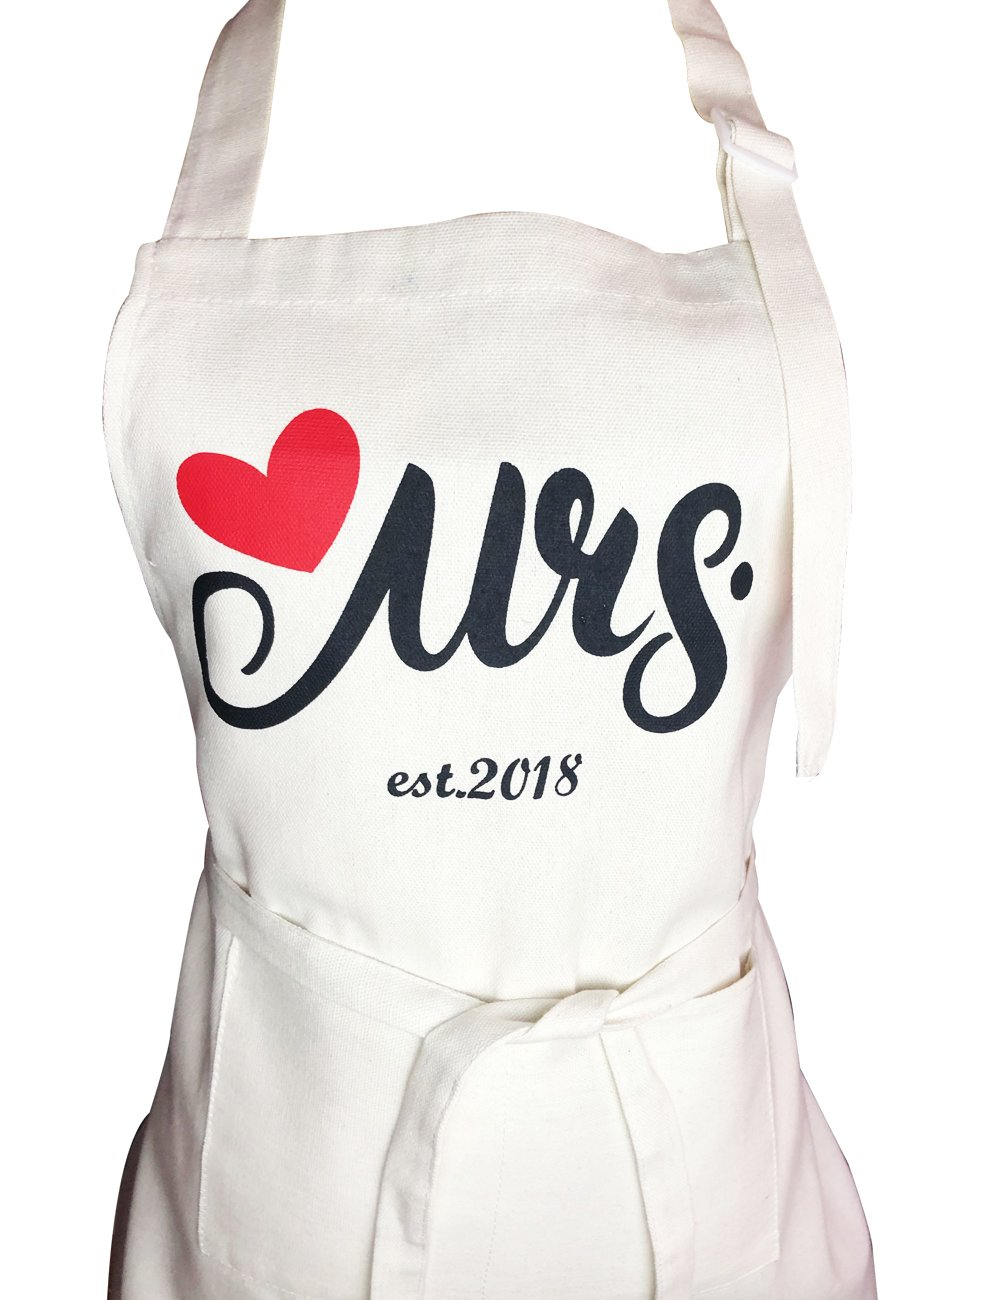 Aprons Gift Set With His and Hers Aprons,Heart-Shaped Ring Dish,Mr. and Mrs. Est. 2018 Kitchen Cooking Set With Gift Box, Funny Cooking Bibs for Wedding Marriage Newlyweds(Set of 2) (Heart) by NLooking (Image #3)